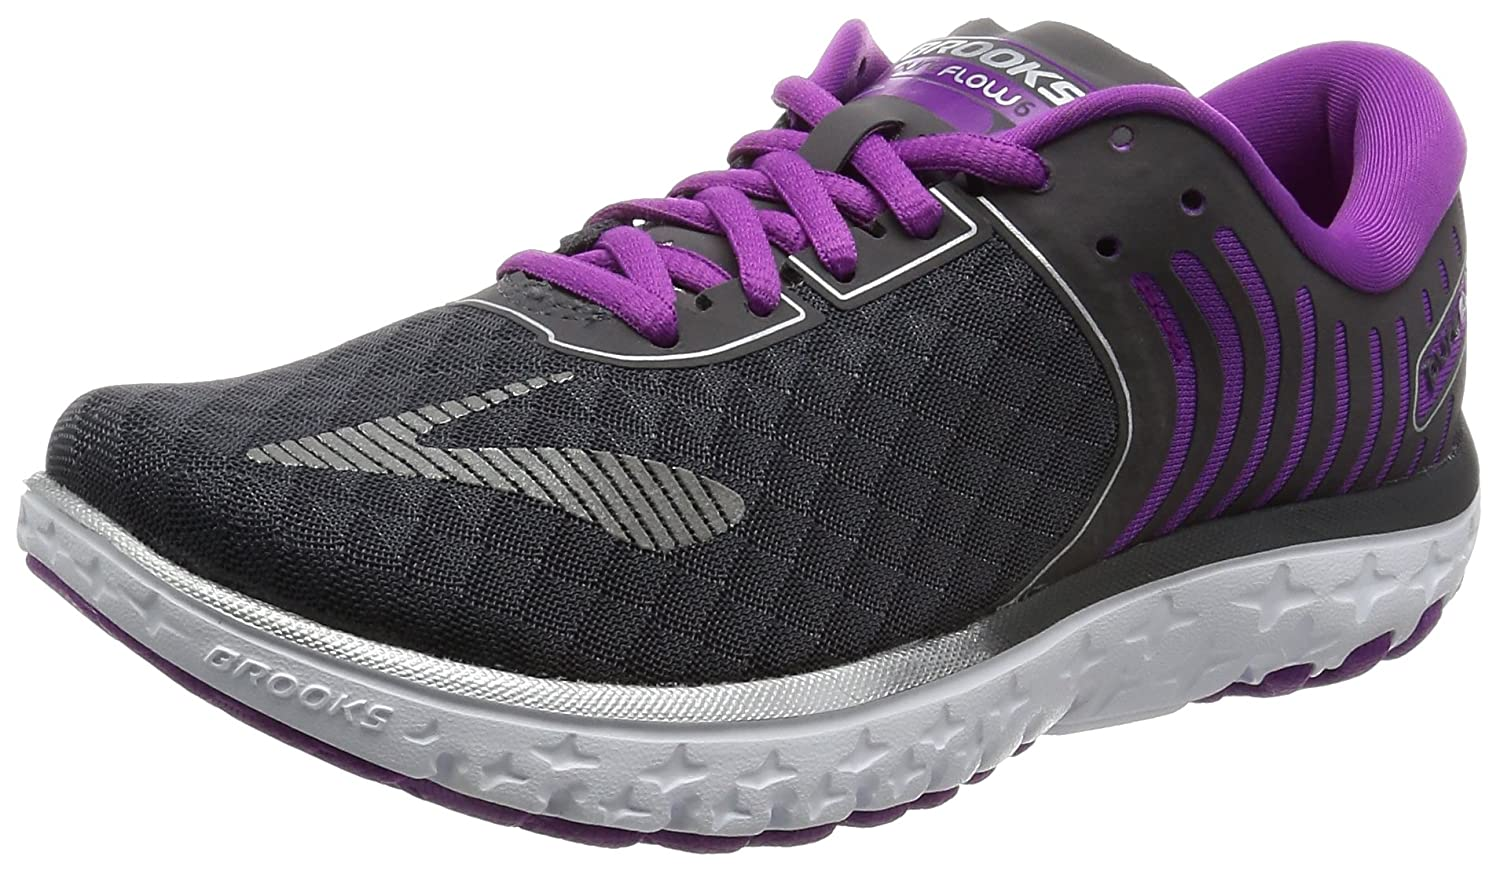 Brooks Women's PureFlow 6 B01GEZV71U 12 B(M) US|Anthracite/Silver/Purple Cactus Flower